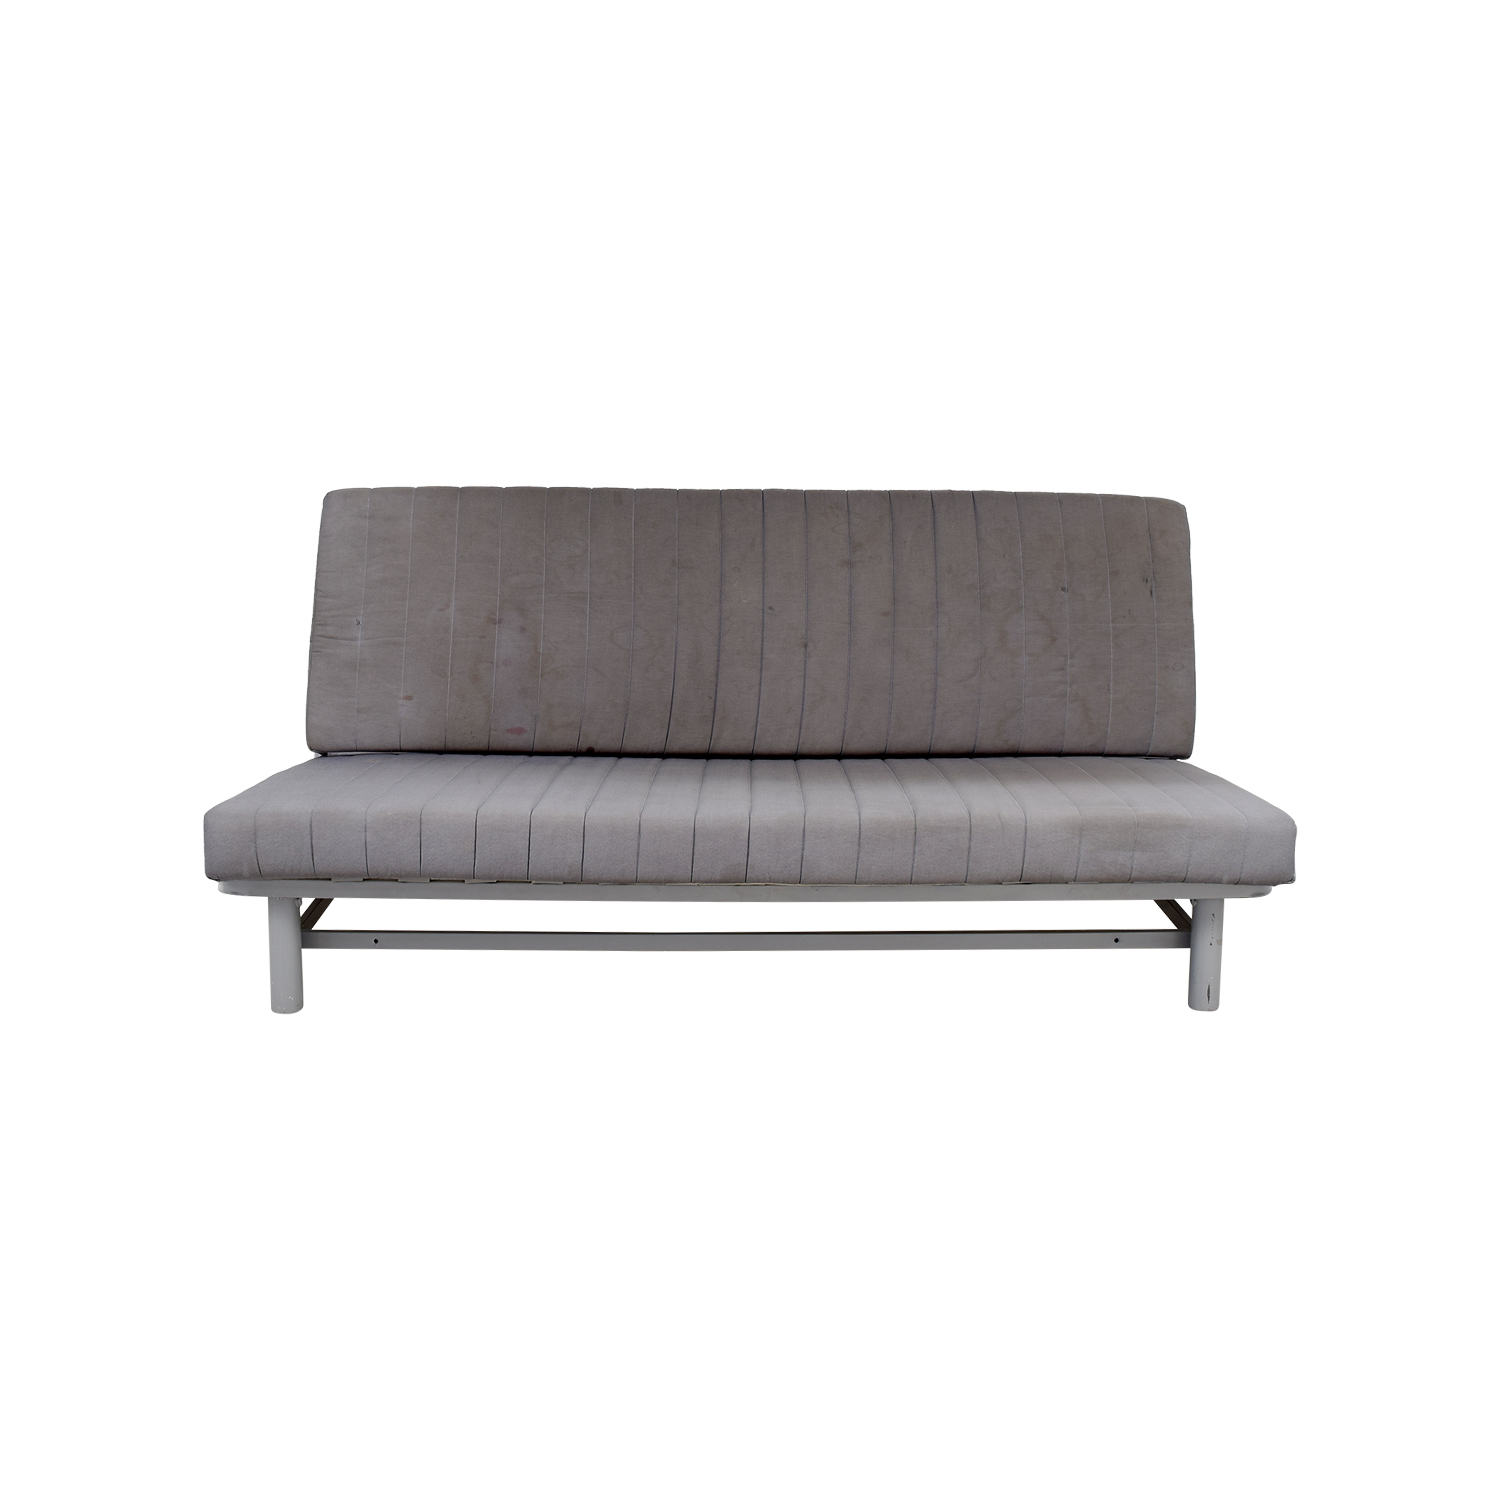 76% OFF IKEA IKEA Grey Sofa Bed Sofas